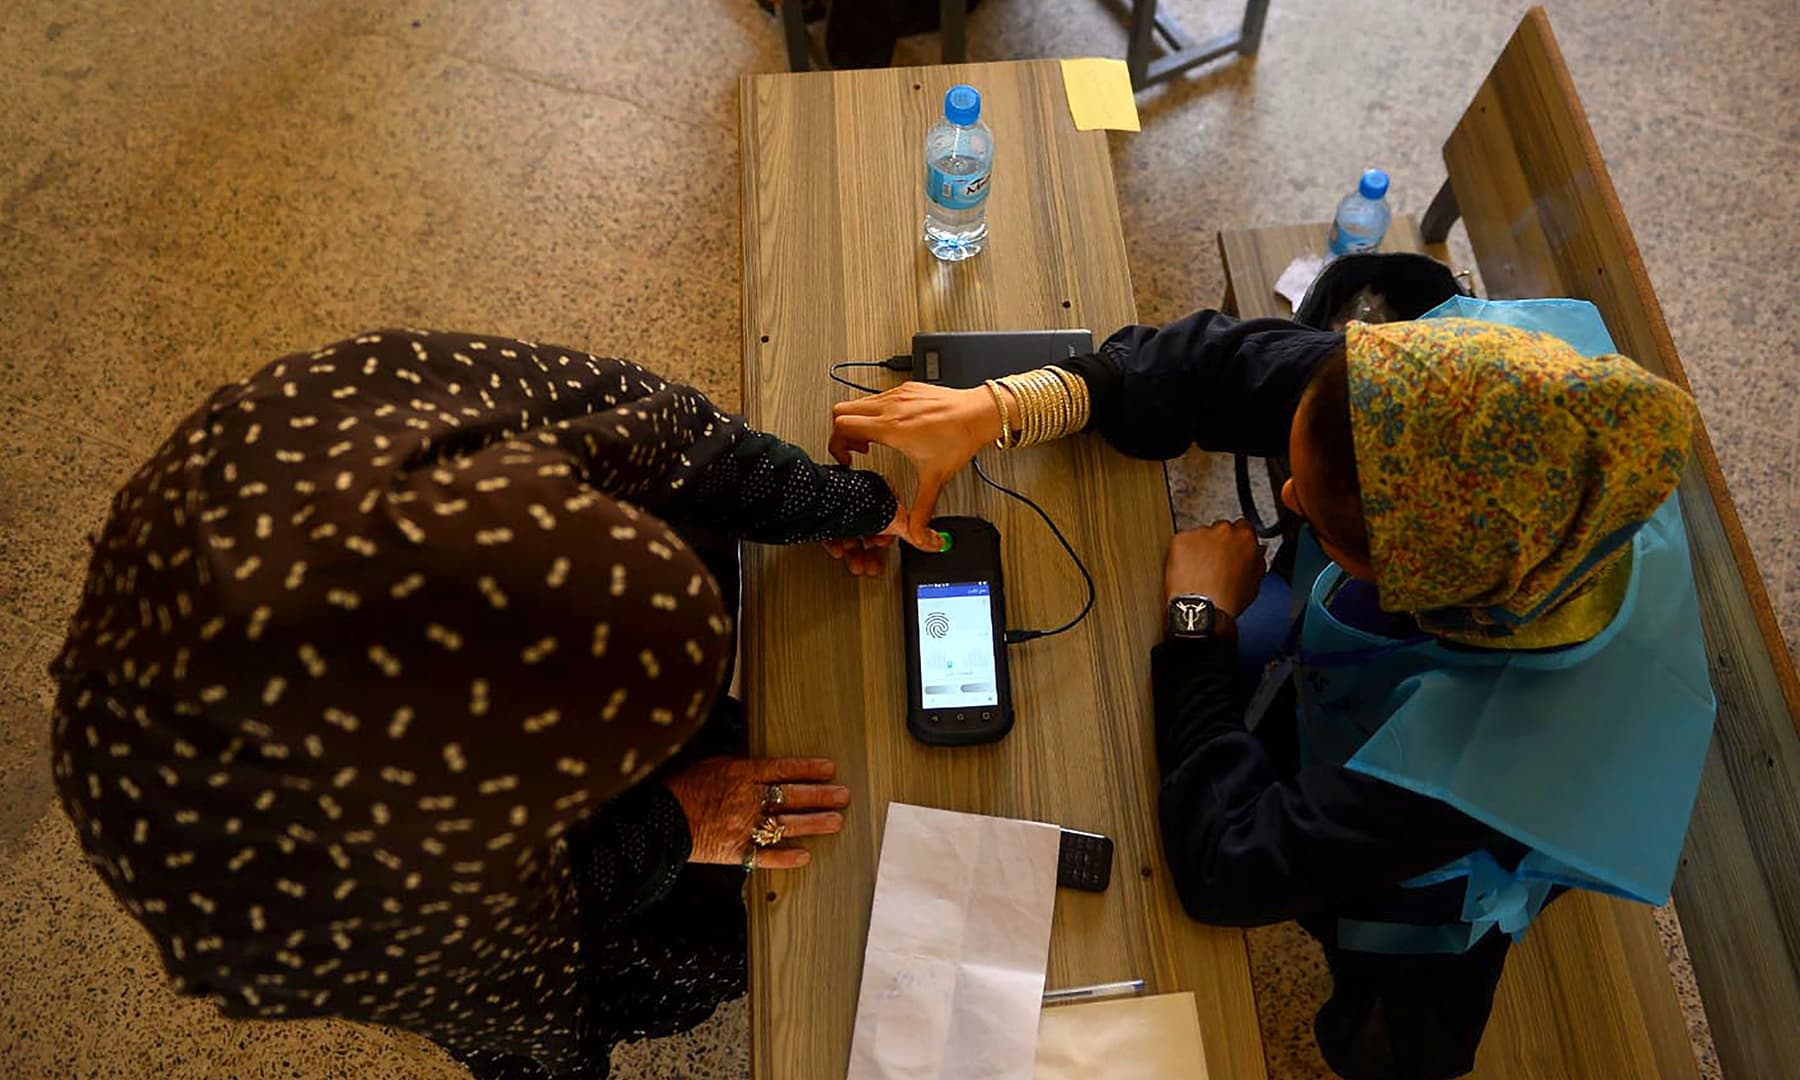 An Independent Election Commission (IEC) official scans a finger of a voter with a biometric device at a polling station in Herat. — AFP